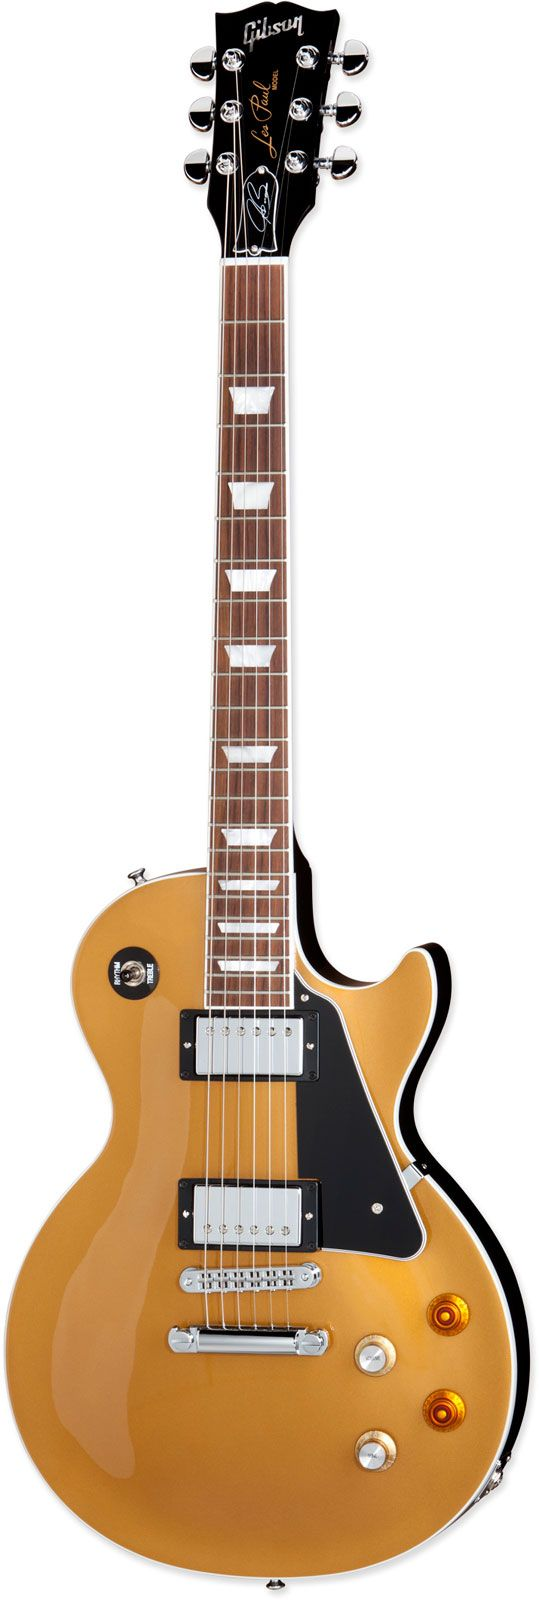 GIBSON JOE BONAMASSA LES PAUL STANDARD GOLD TOP BLACK